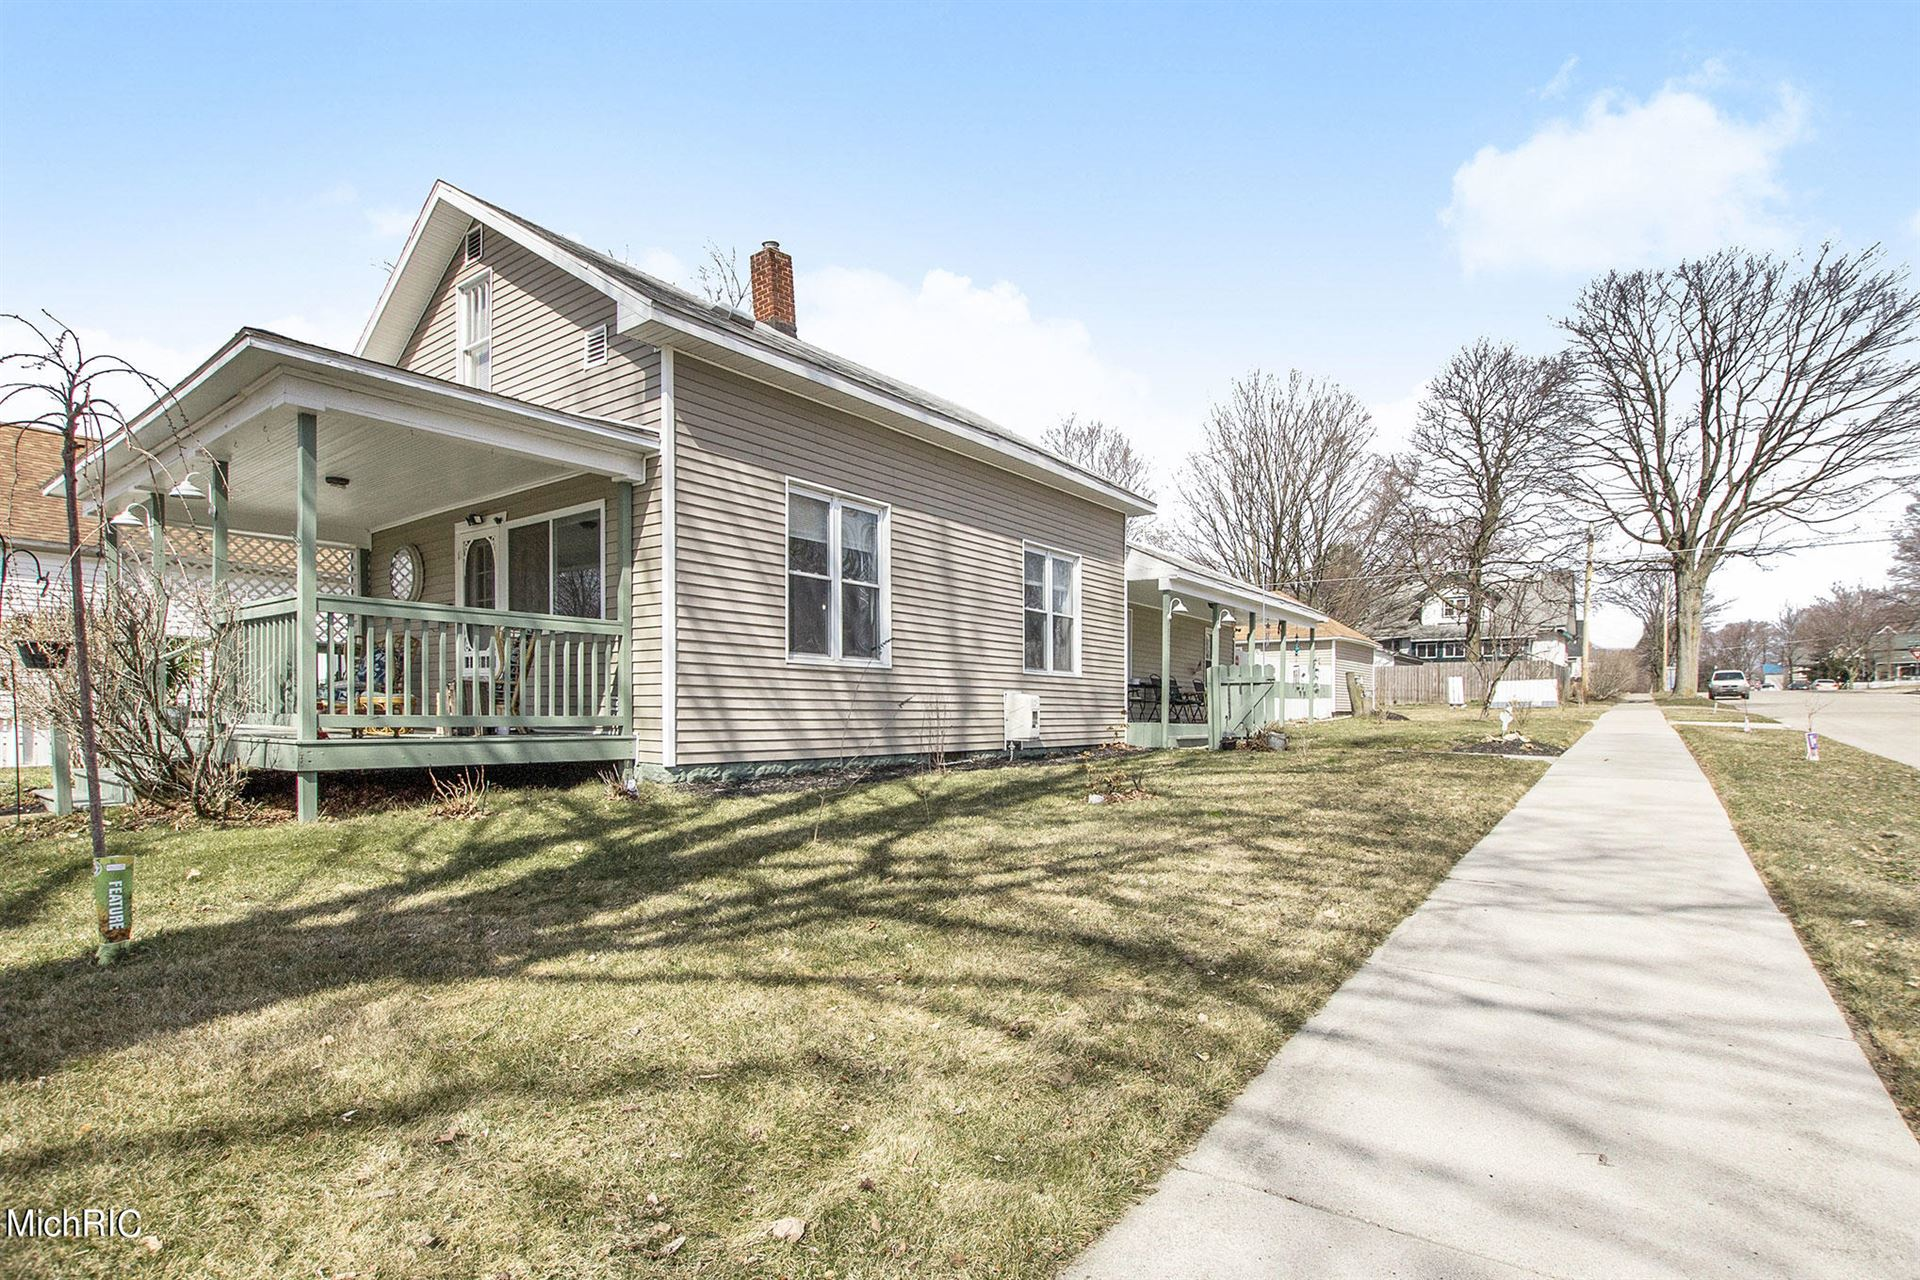 215 E Melendy Street, Ludington, MI 49431 - MLS#: 21009149